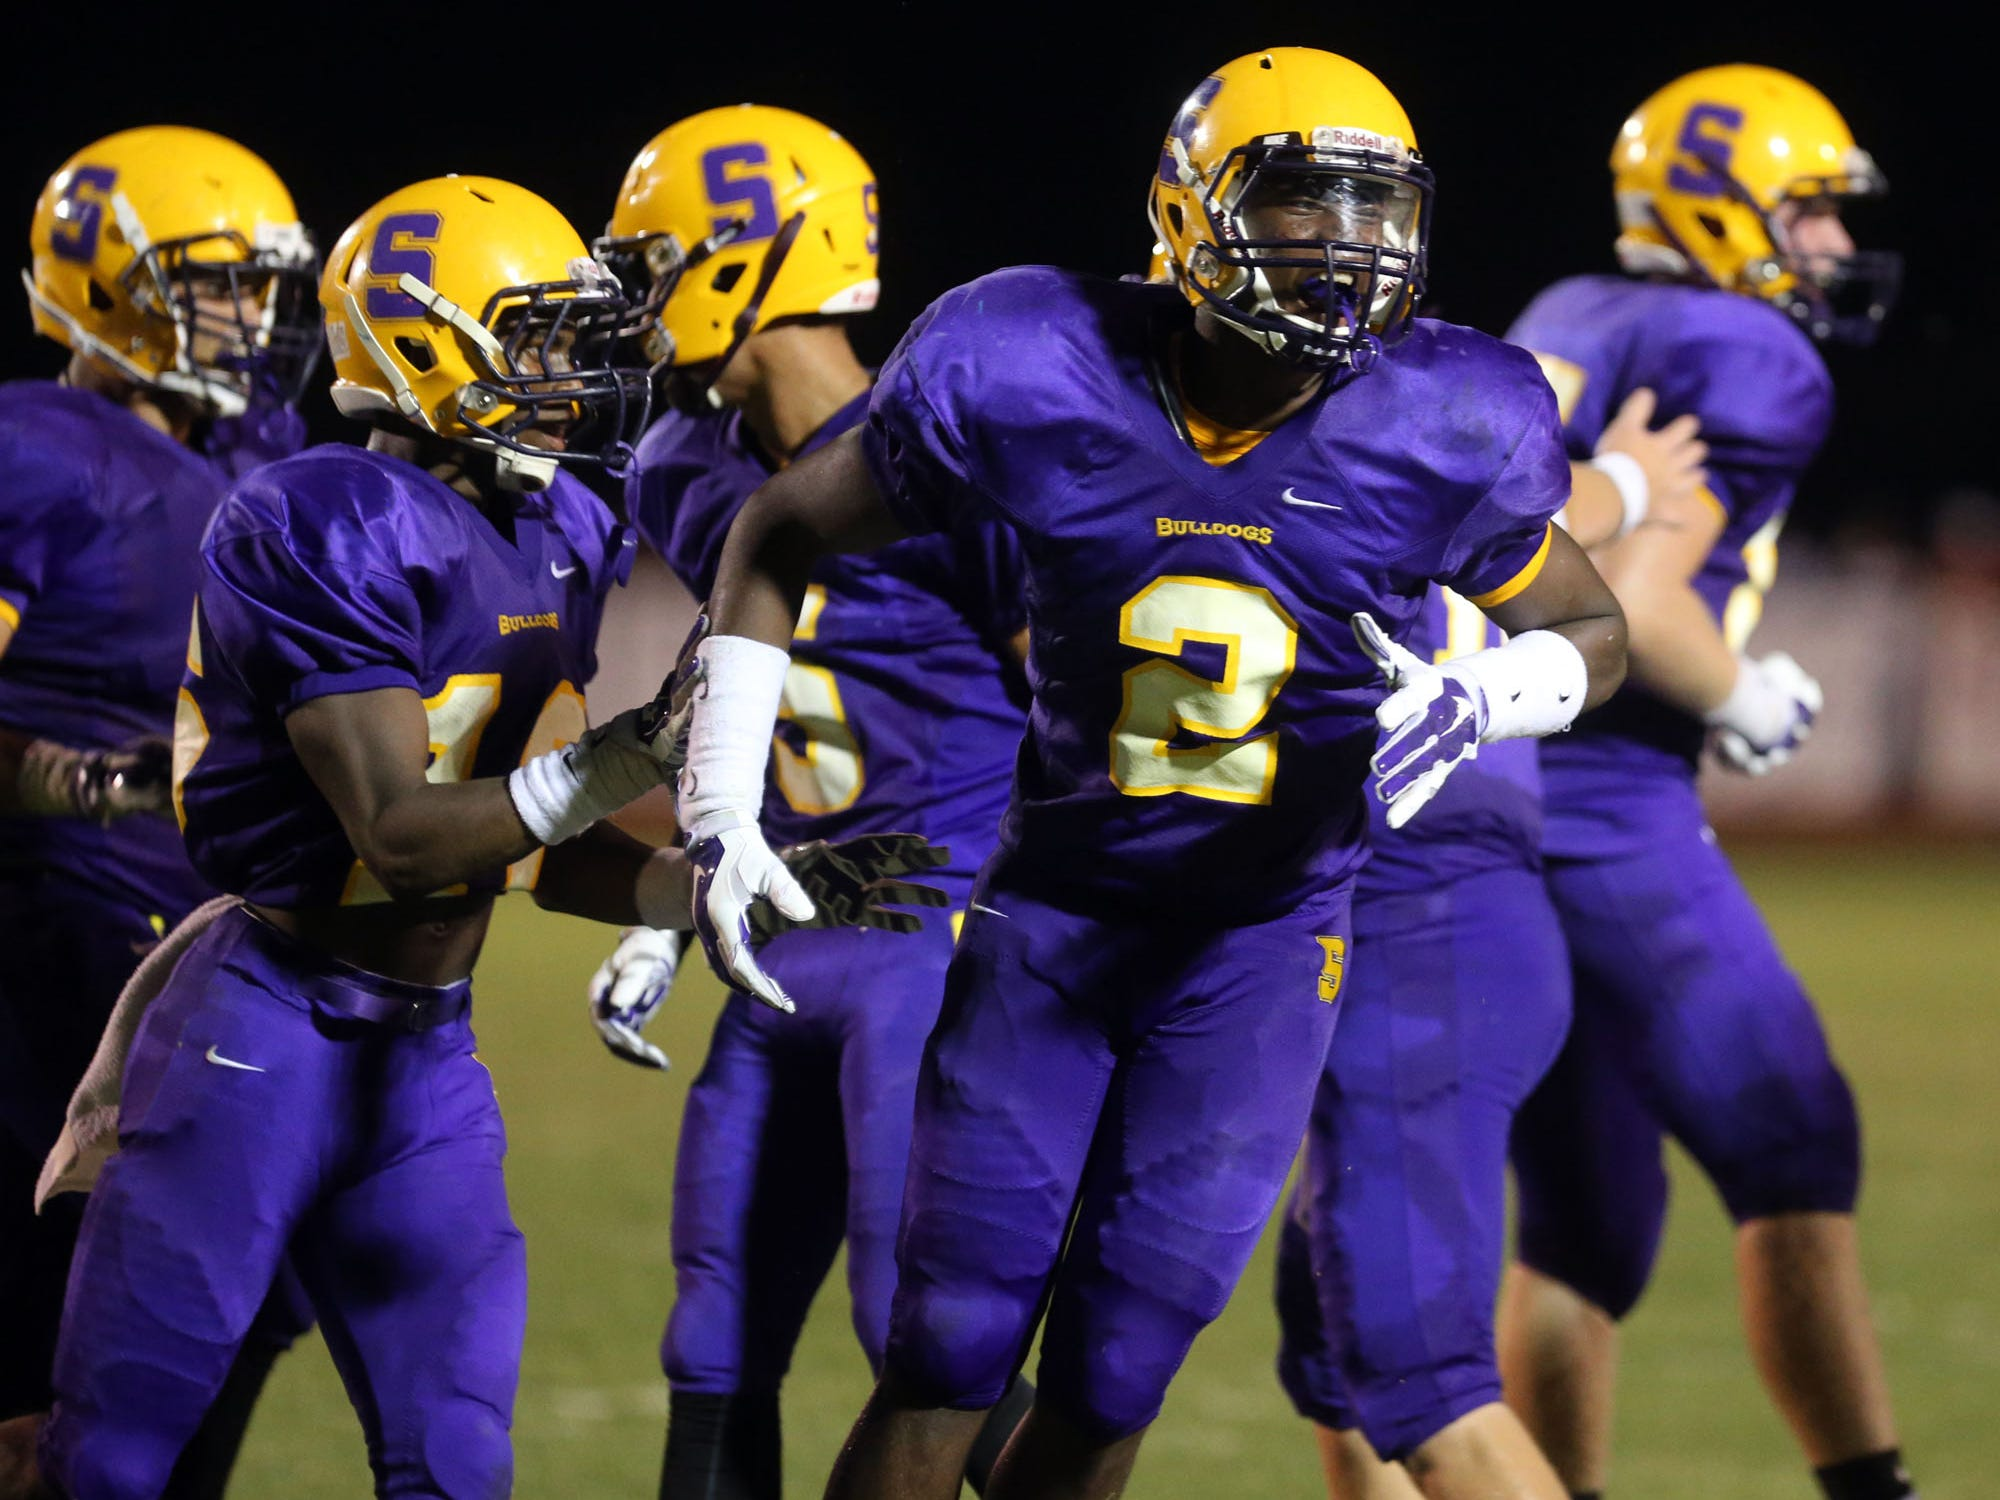 Smyrna's Ikenna Okeke(#2) celebrates after recovering a fumble by La Vergne in the second quarter at Smyrna Thursday, August 21, 2014.